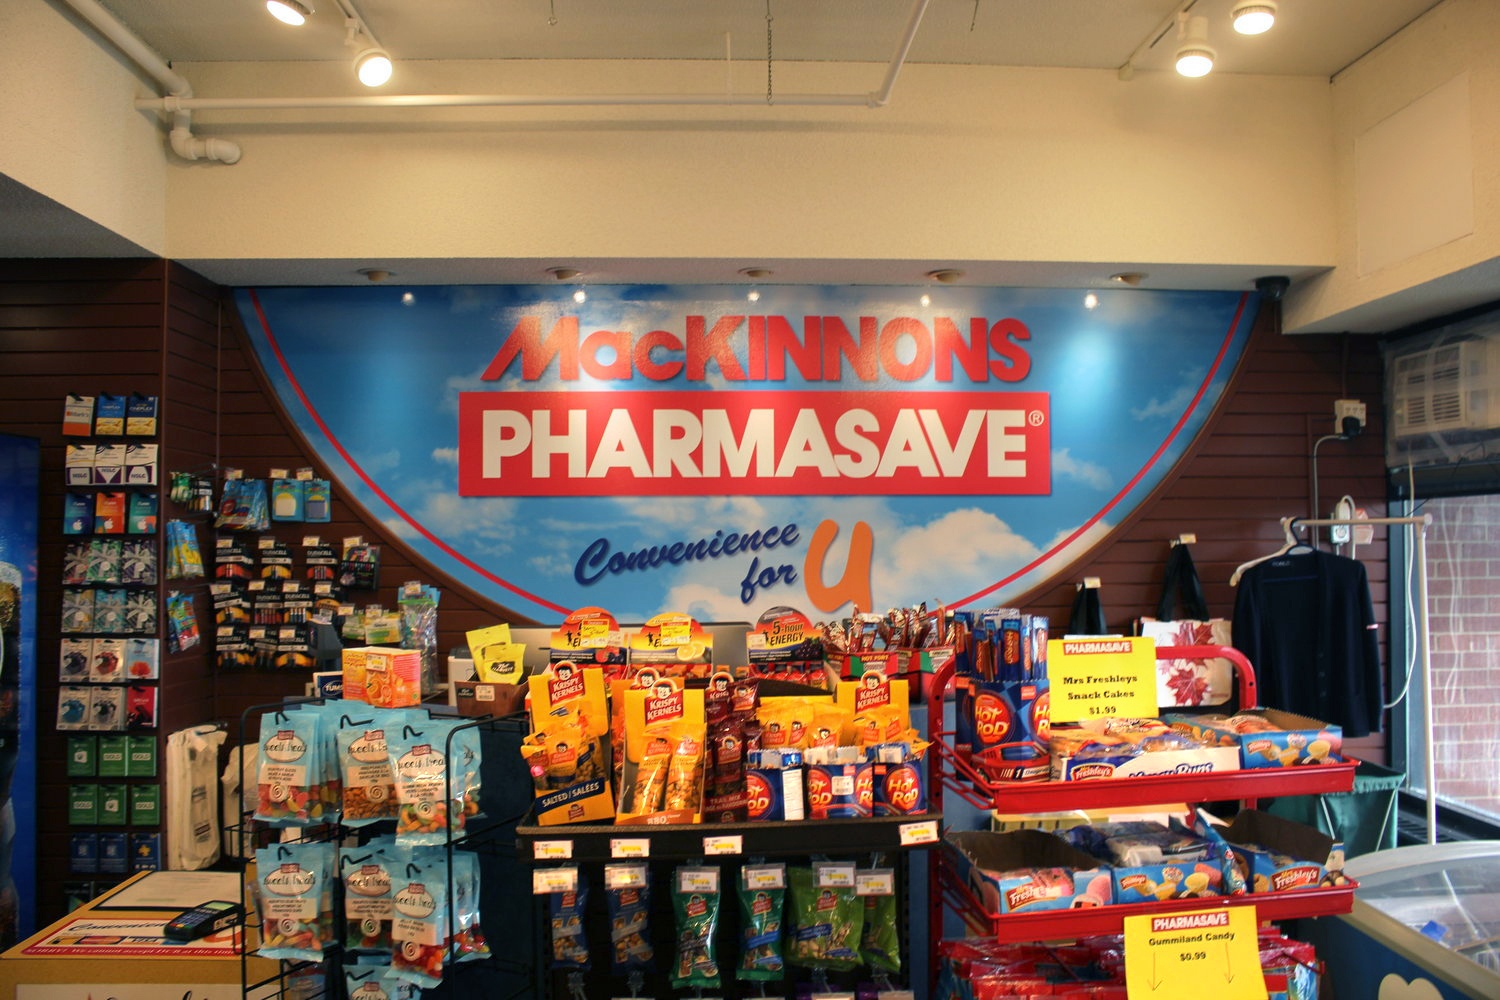 MacKinnons Pharmasave Convenience for U - From study snacks to shampoo, medicine and flu shots - we've got you covered! We're open daily, 9 am - 9pm, 2nd floor Bloomfield Centre. Don't forget to transfer your perceptions to our full service pharmacy for additional savings with your student heath card. Our pharmacy is open weekdays noon - 4pm, with a convenient prescription drop off box for after hours. Phone: 902-863-2376